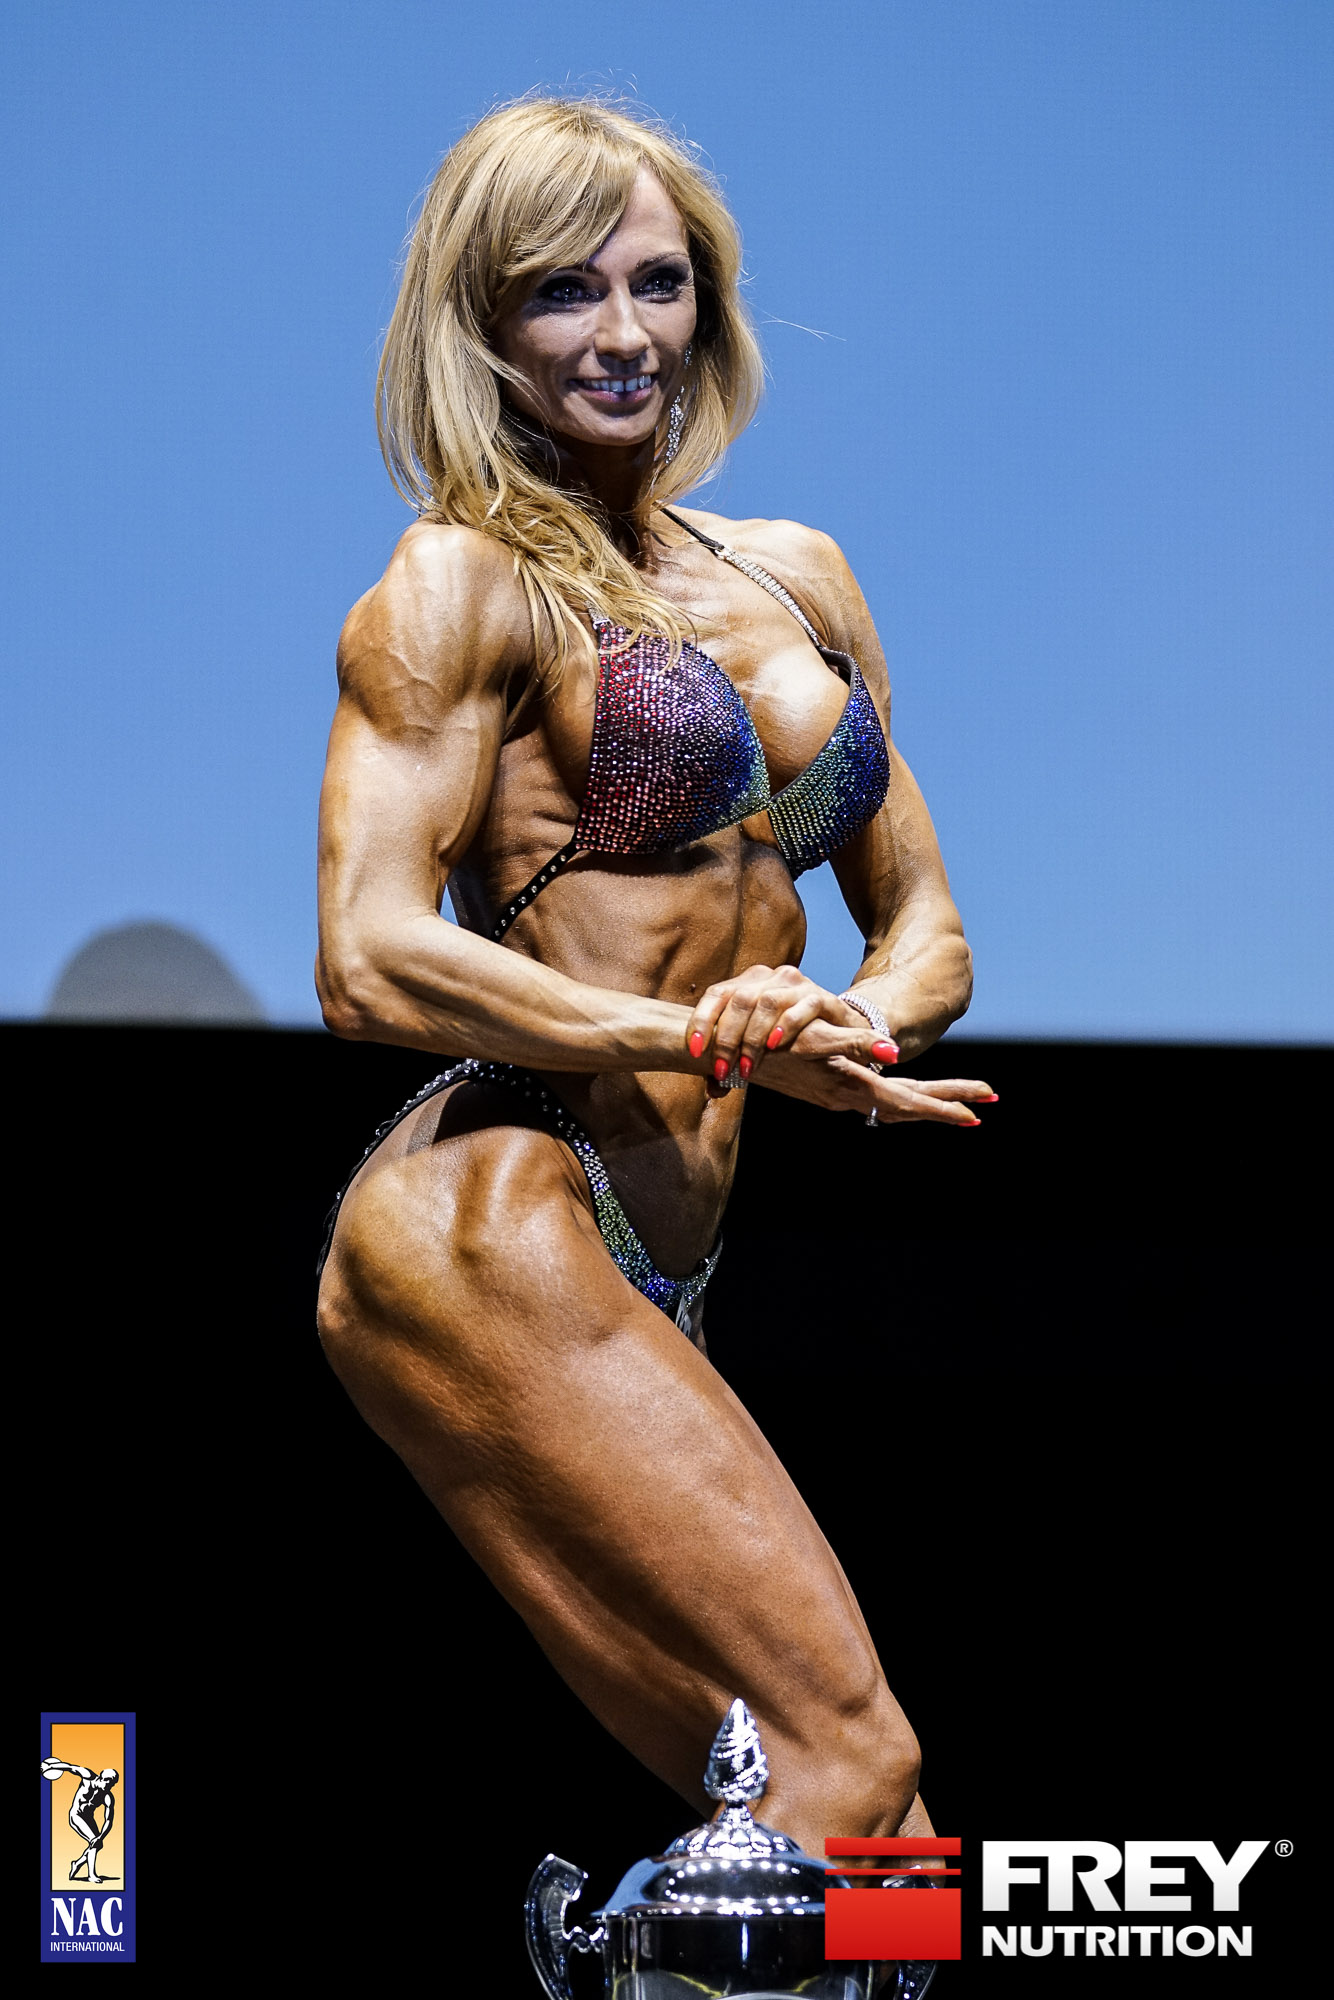 Figure Over 40 | Monika Hajduk (POL)